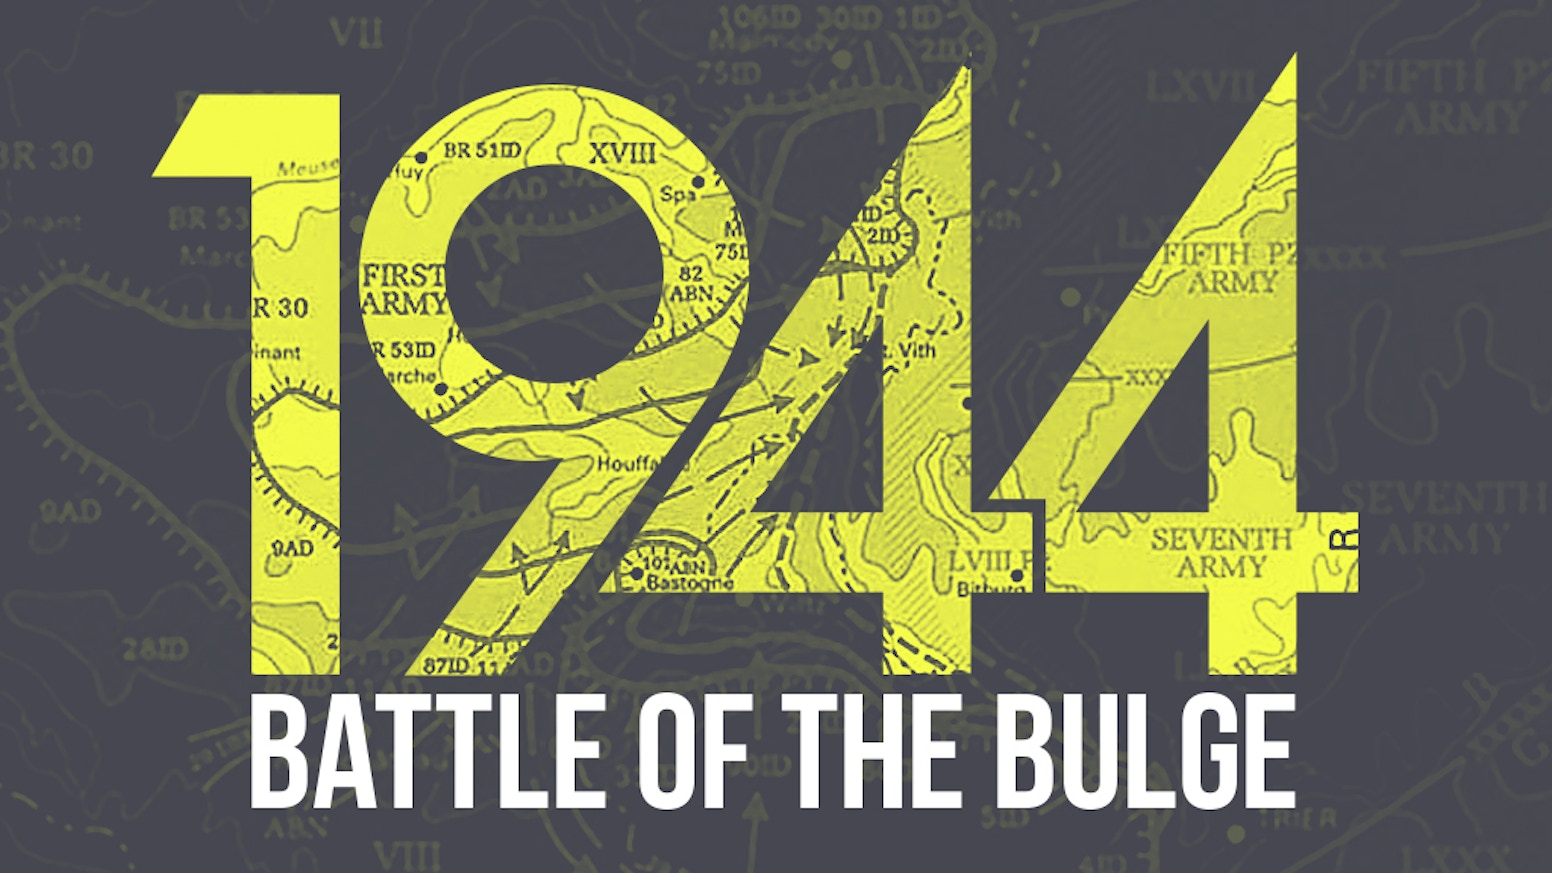 A hex & counter war game on the Battle of the Bulge. Custom dice, variable objectives, and more! Playable by 1 to 2 players in 2 hours.